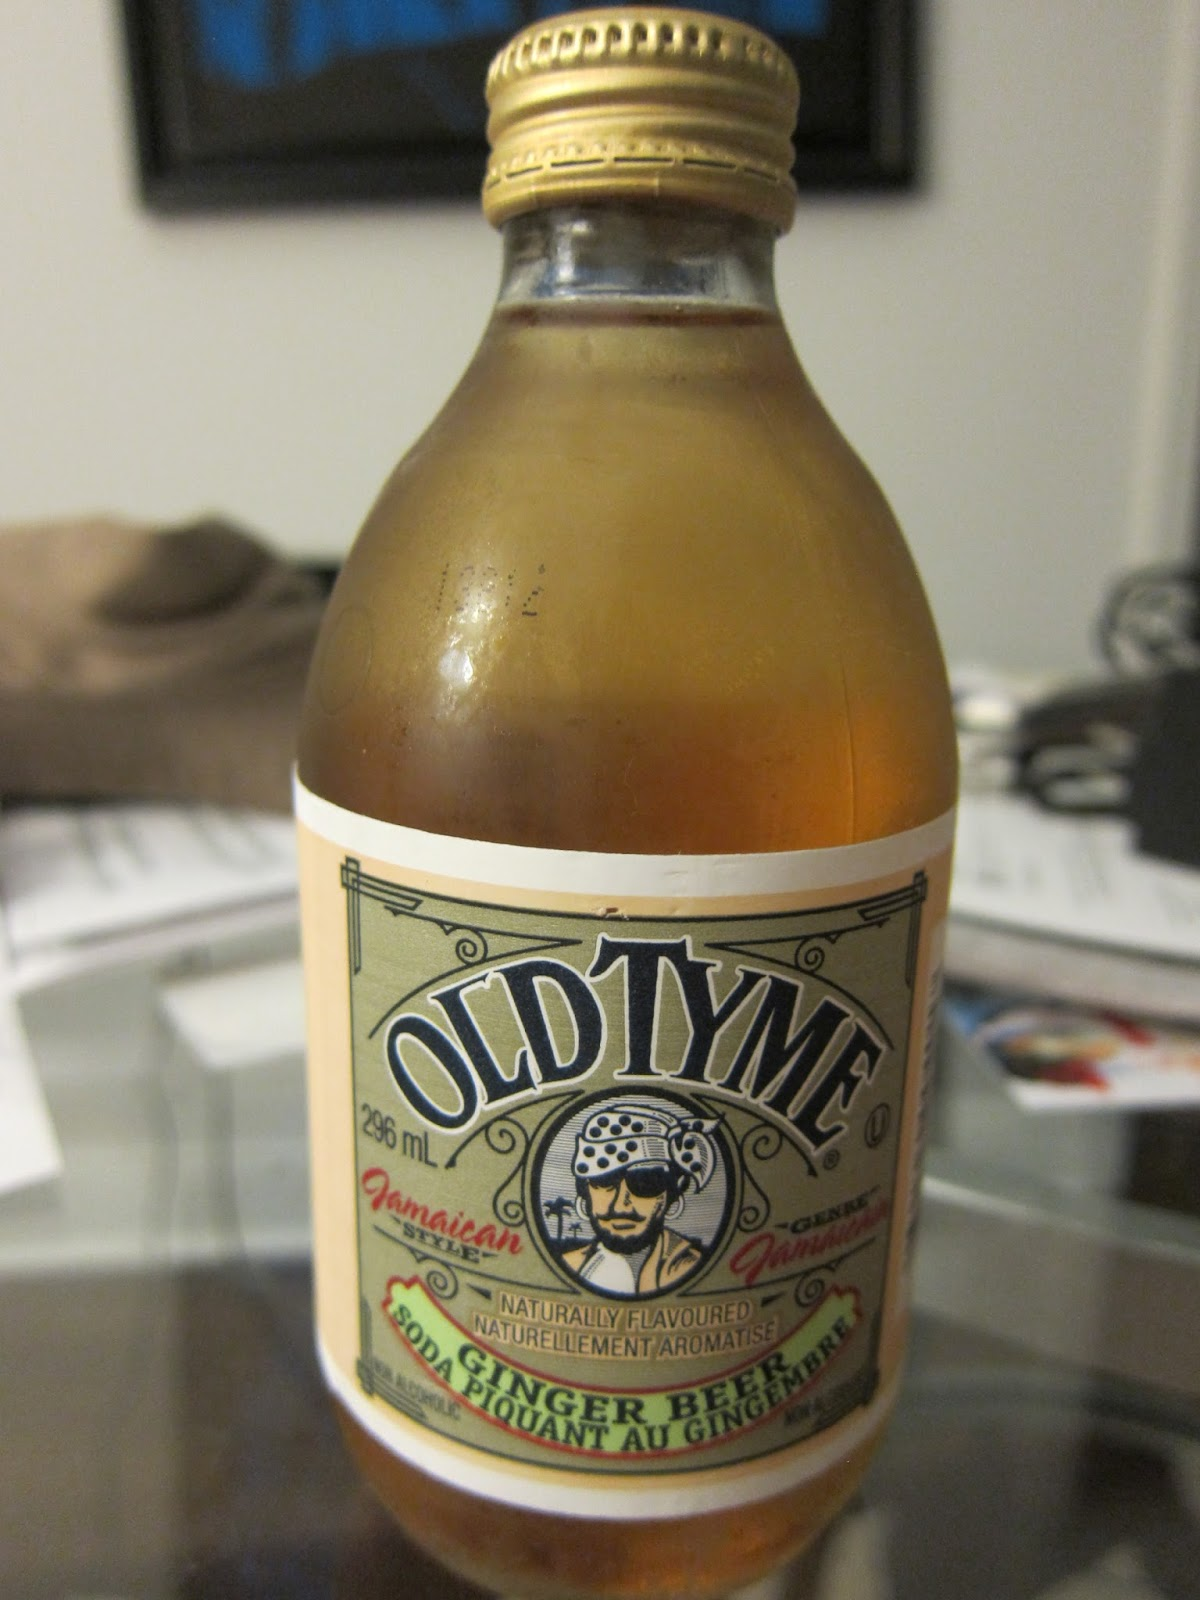 ginger beer what do you call it old tyme jamaican style ginger beer ...